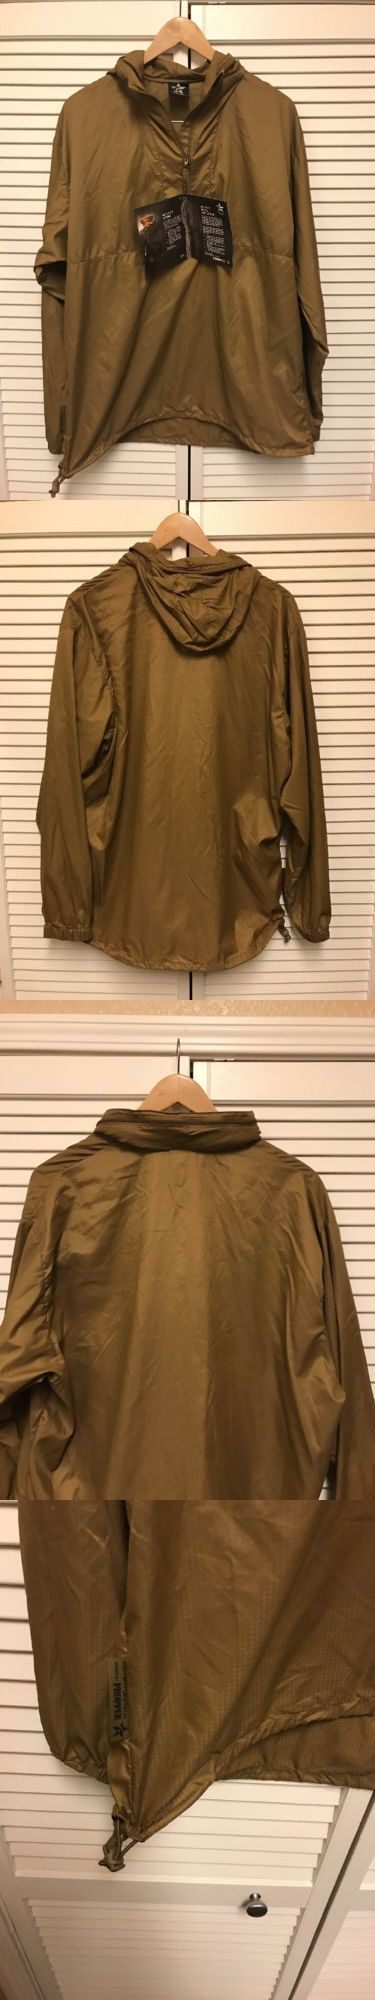 Coats and Jackets 181358: Propper Adventure Tech Mens Lightweight Jacket Size Large Gold Brown Water Repel BUY IT NOW ONLY: $50.0